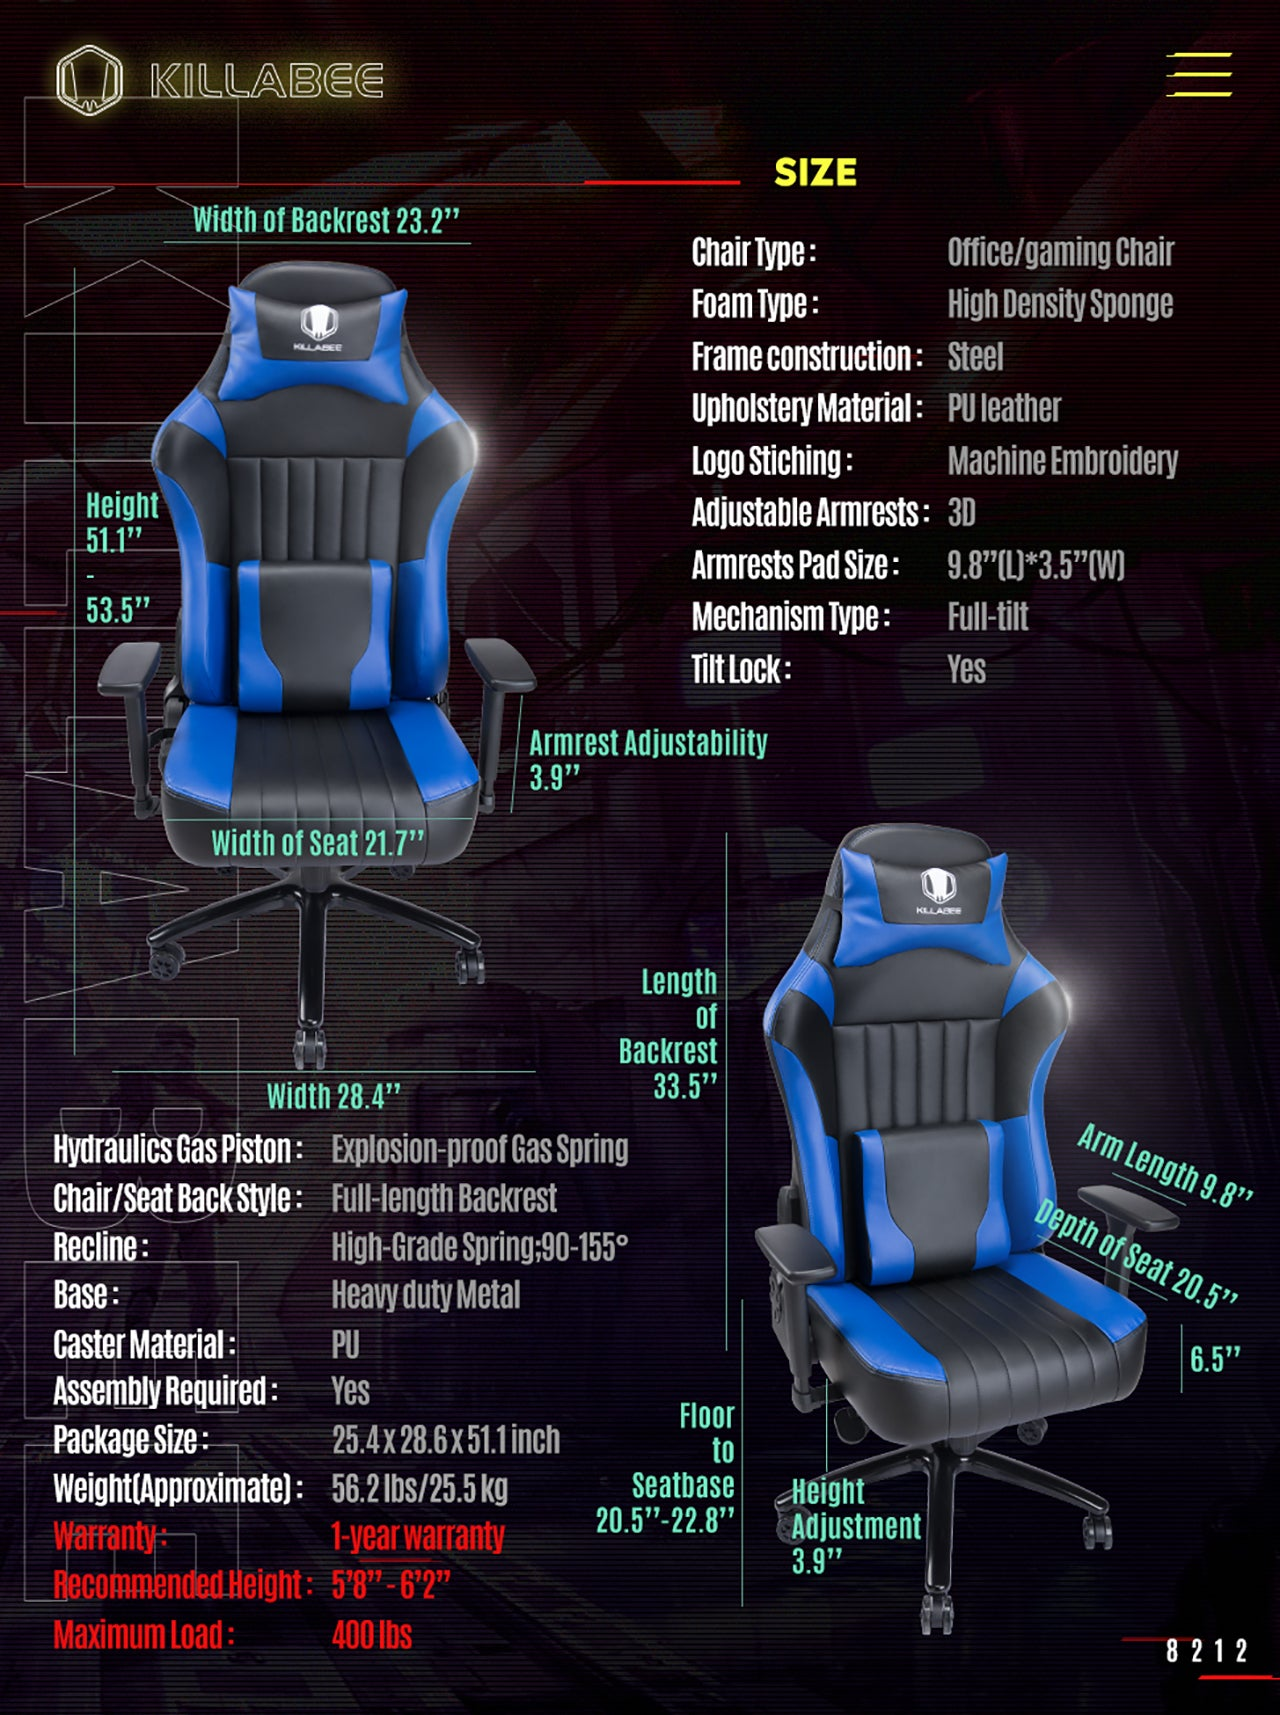 KILLABEE BIG AND TALL GAMING CHAIR 8212 BLUE SPECIFICATION